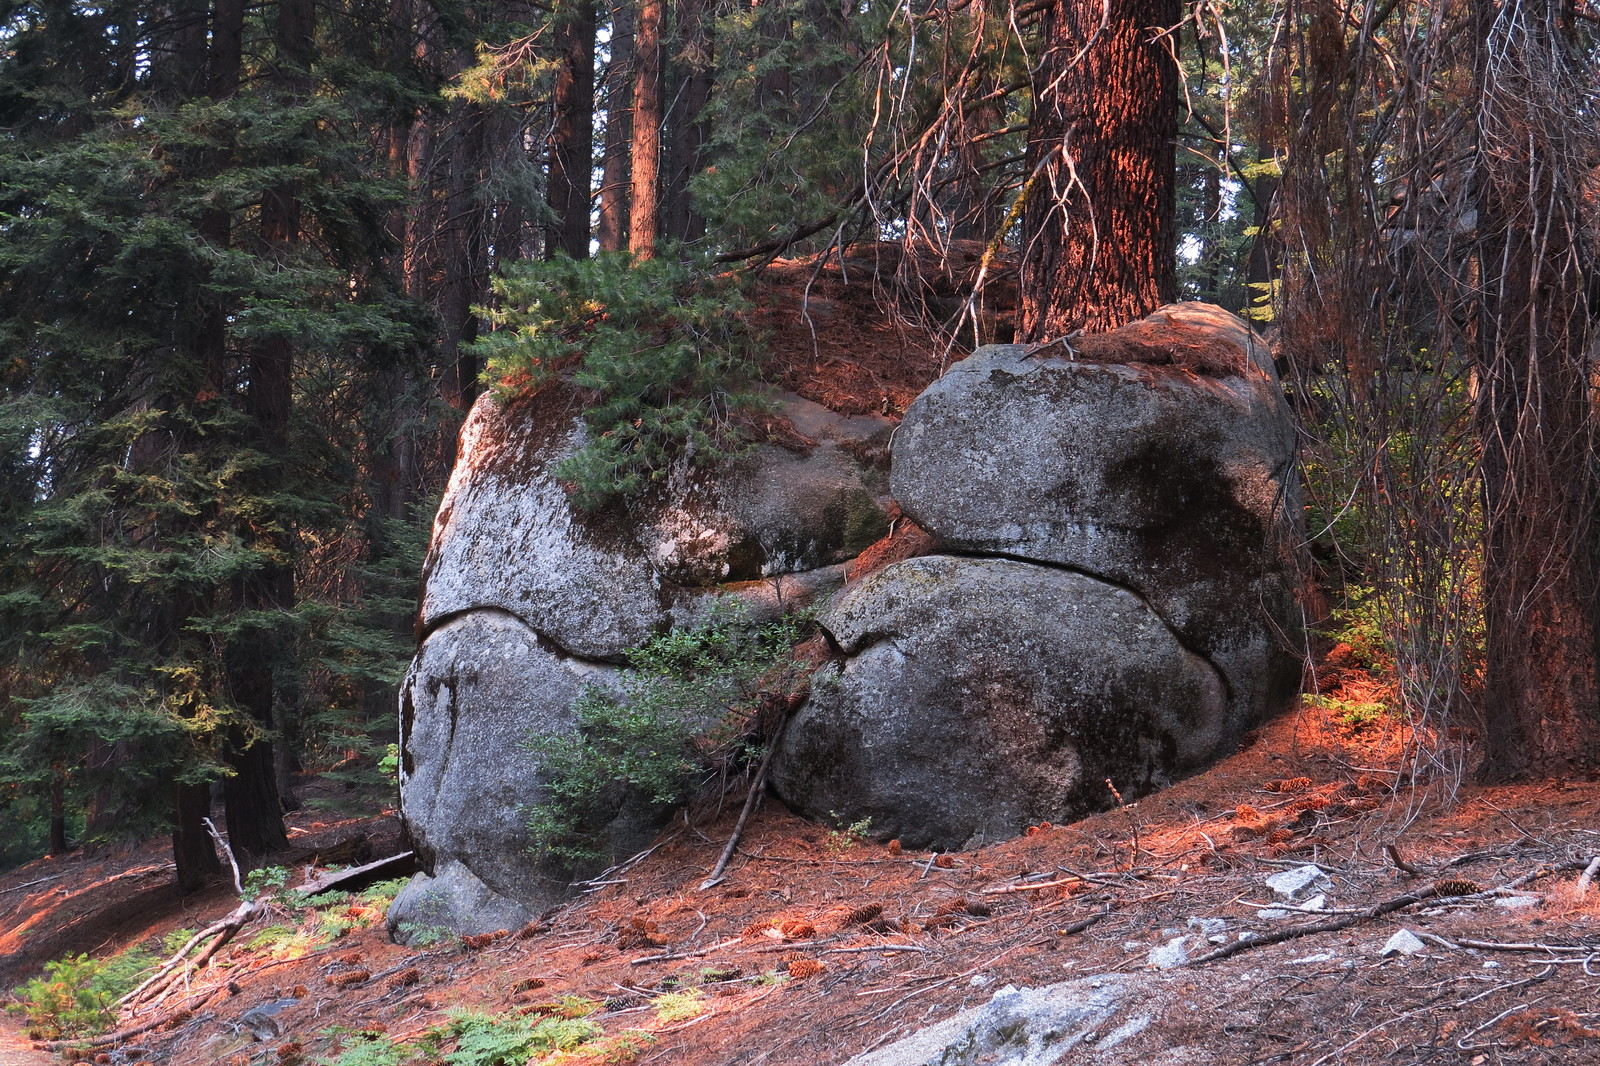 Boots, Kings Canyon, CA